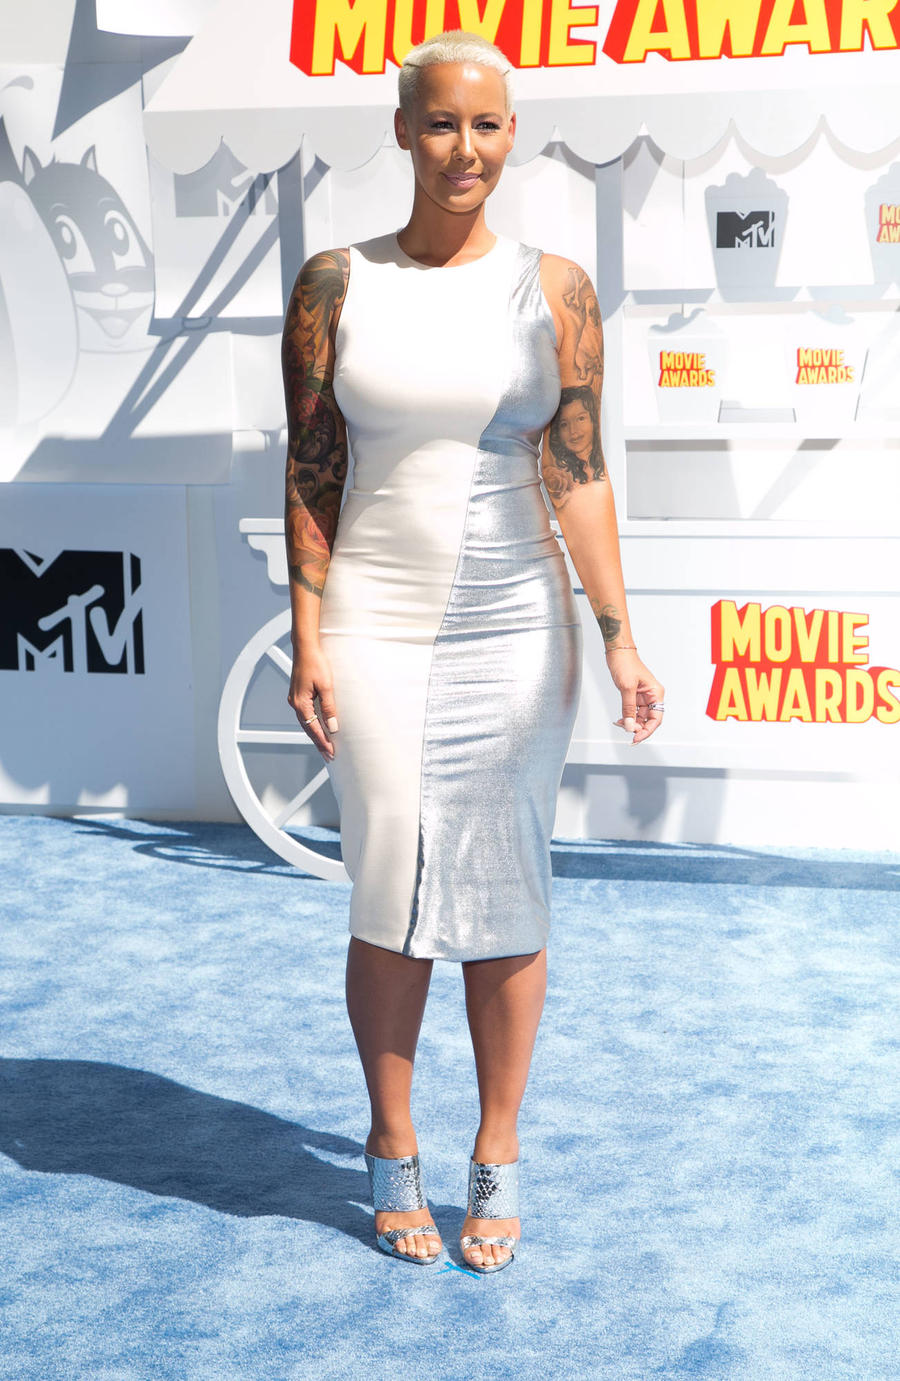 Amber Rose In Trademark Battle With Country Star Over Her Name